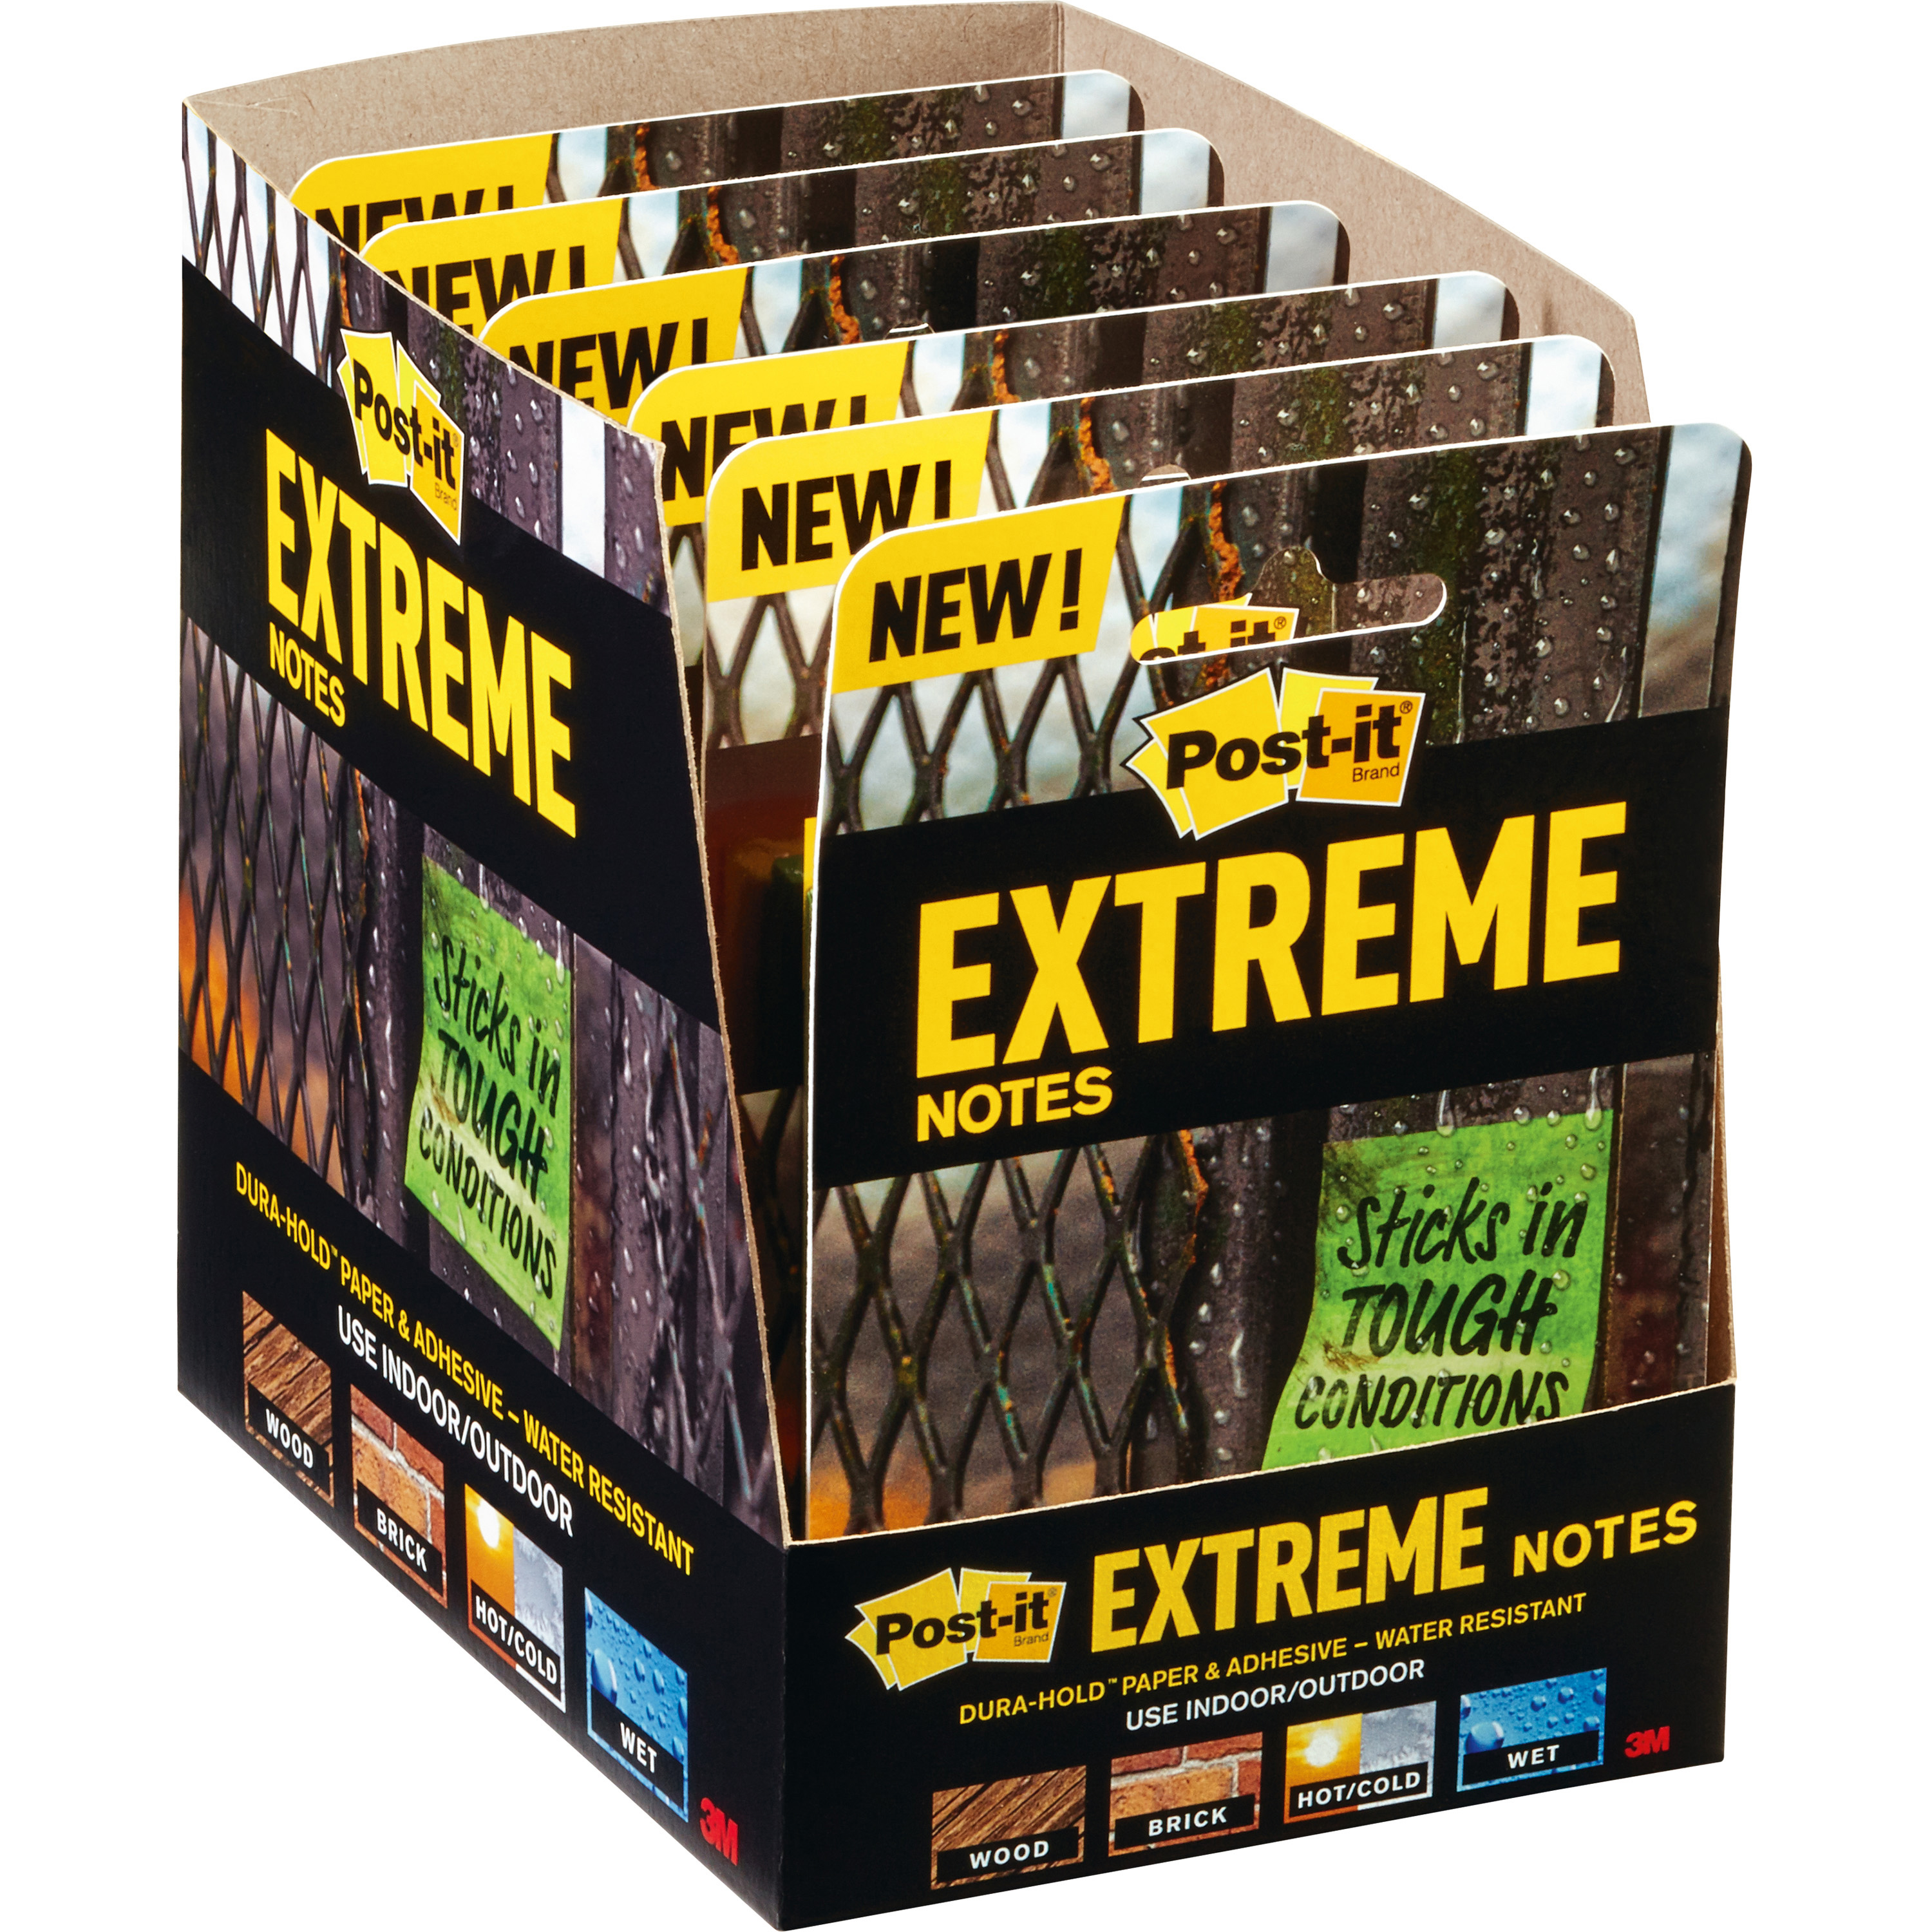 Post-it® Extreme Notes - XTRM333TRYMX